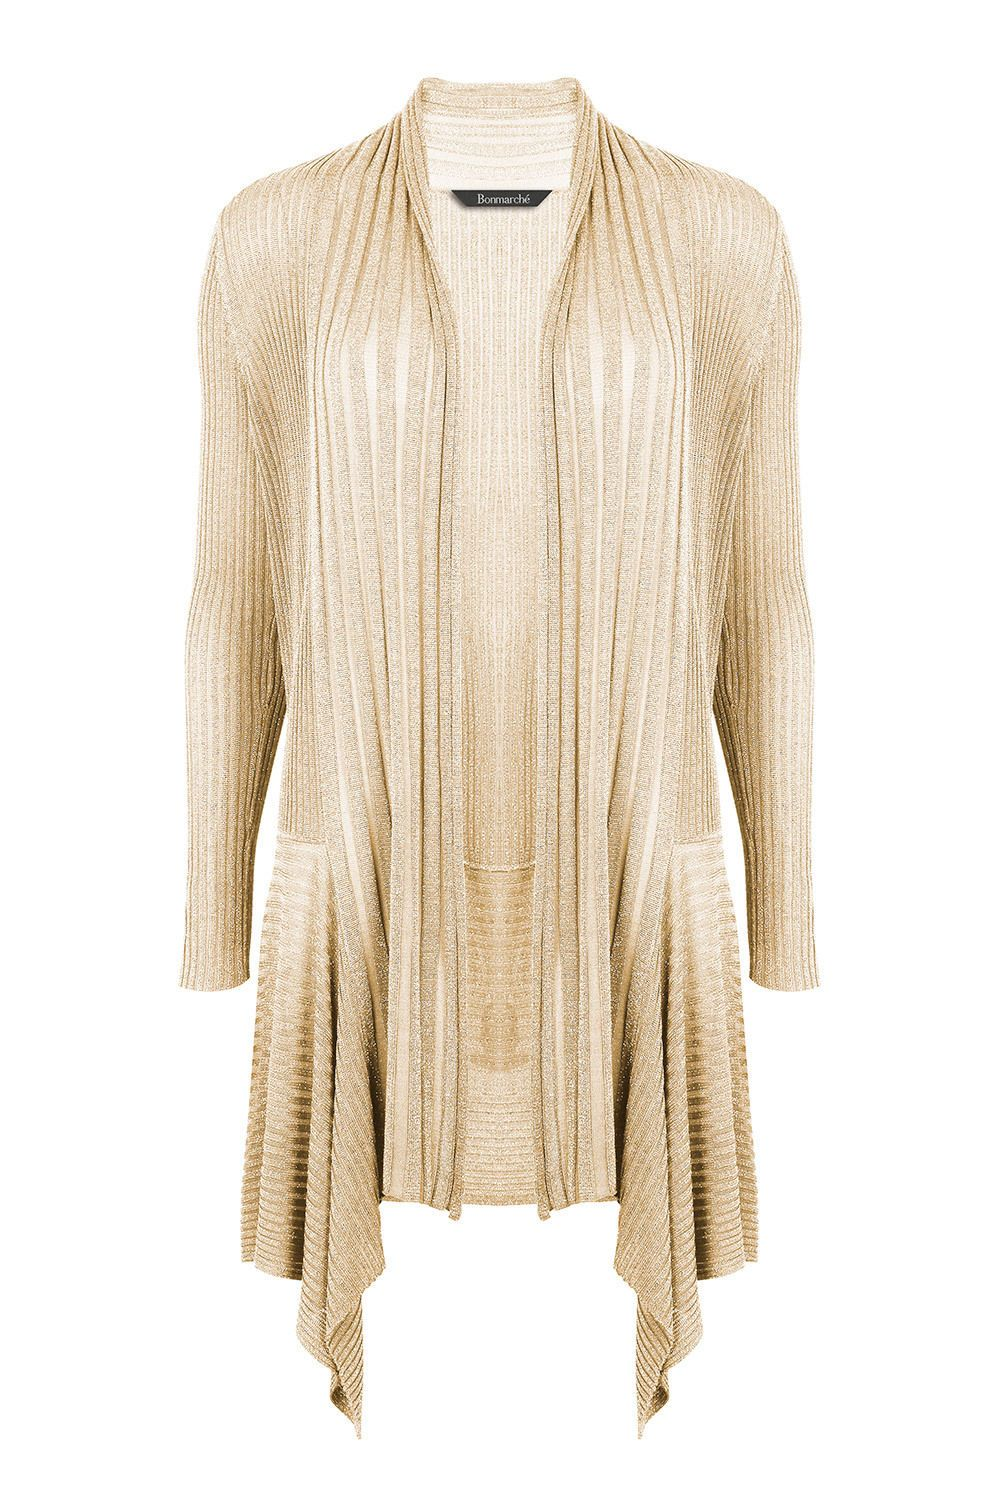 David Emanuel Womens Metallic Rib Waterfall Cardigan Stone Size M ...